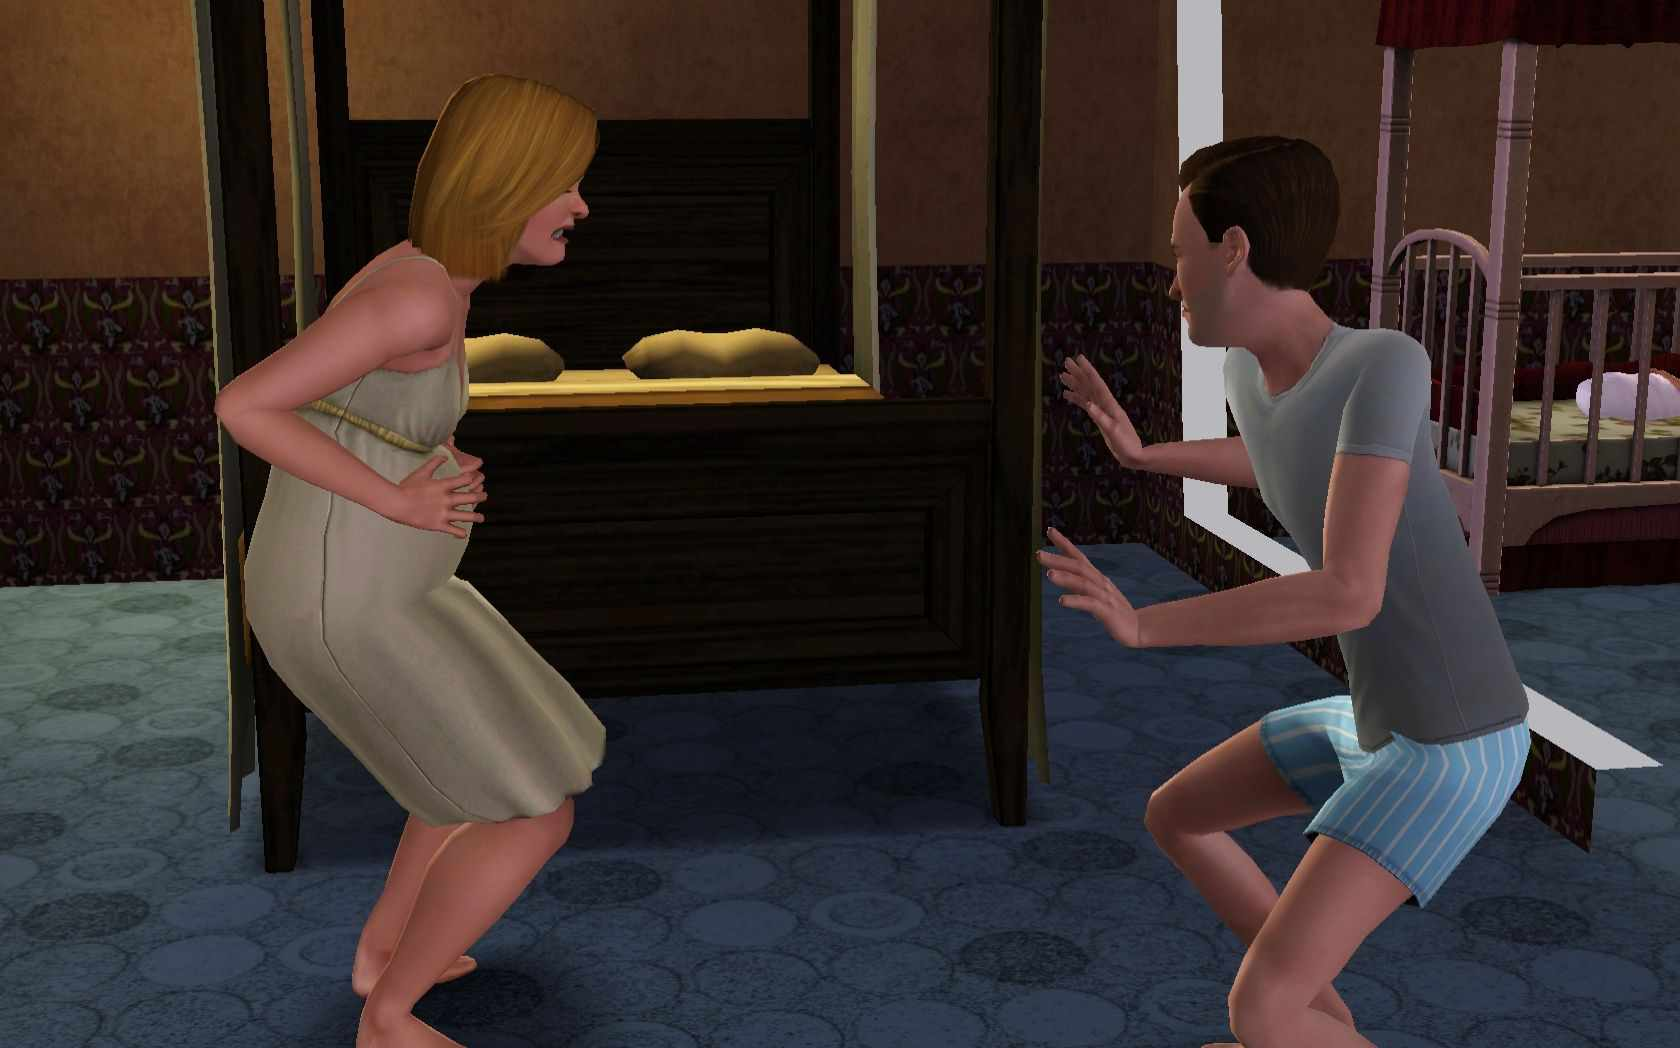 The Sims 3 Pregnancy, Adoption, and Having Kids